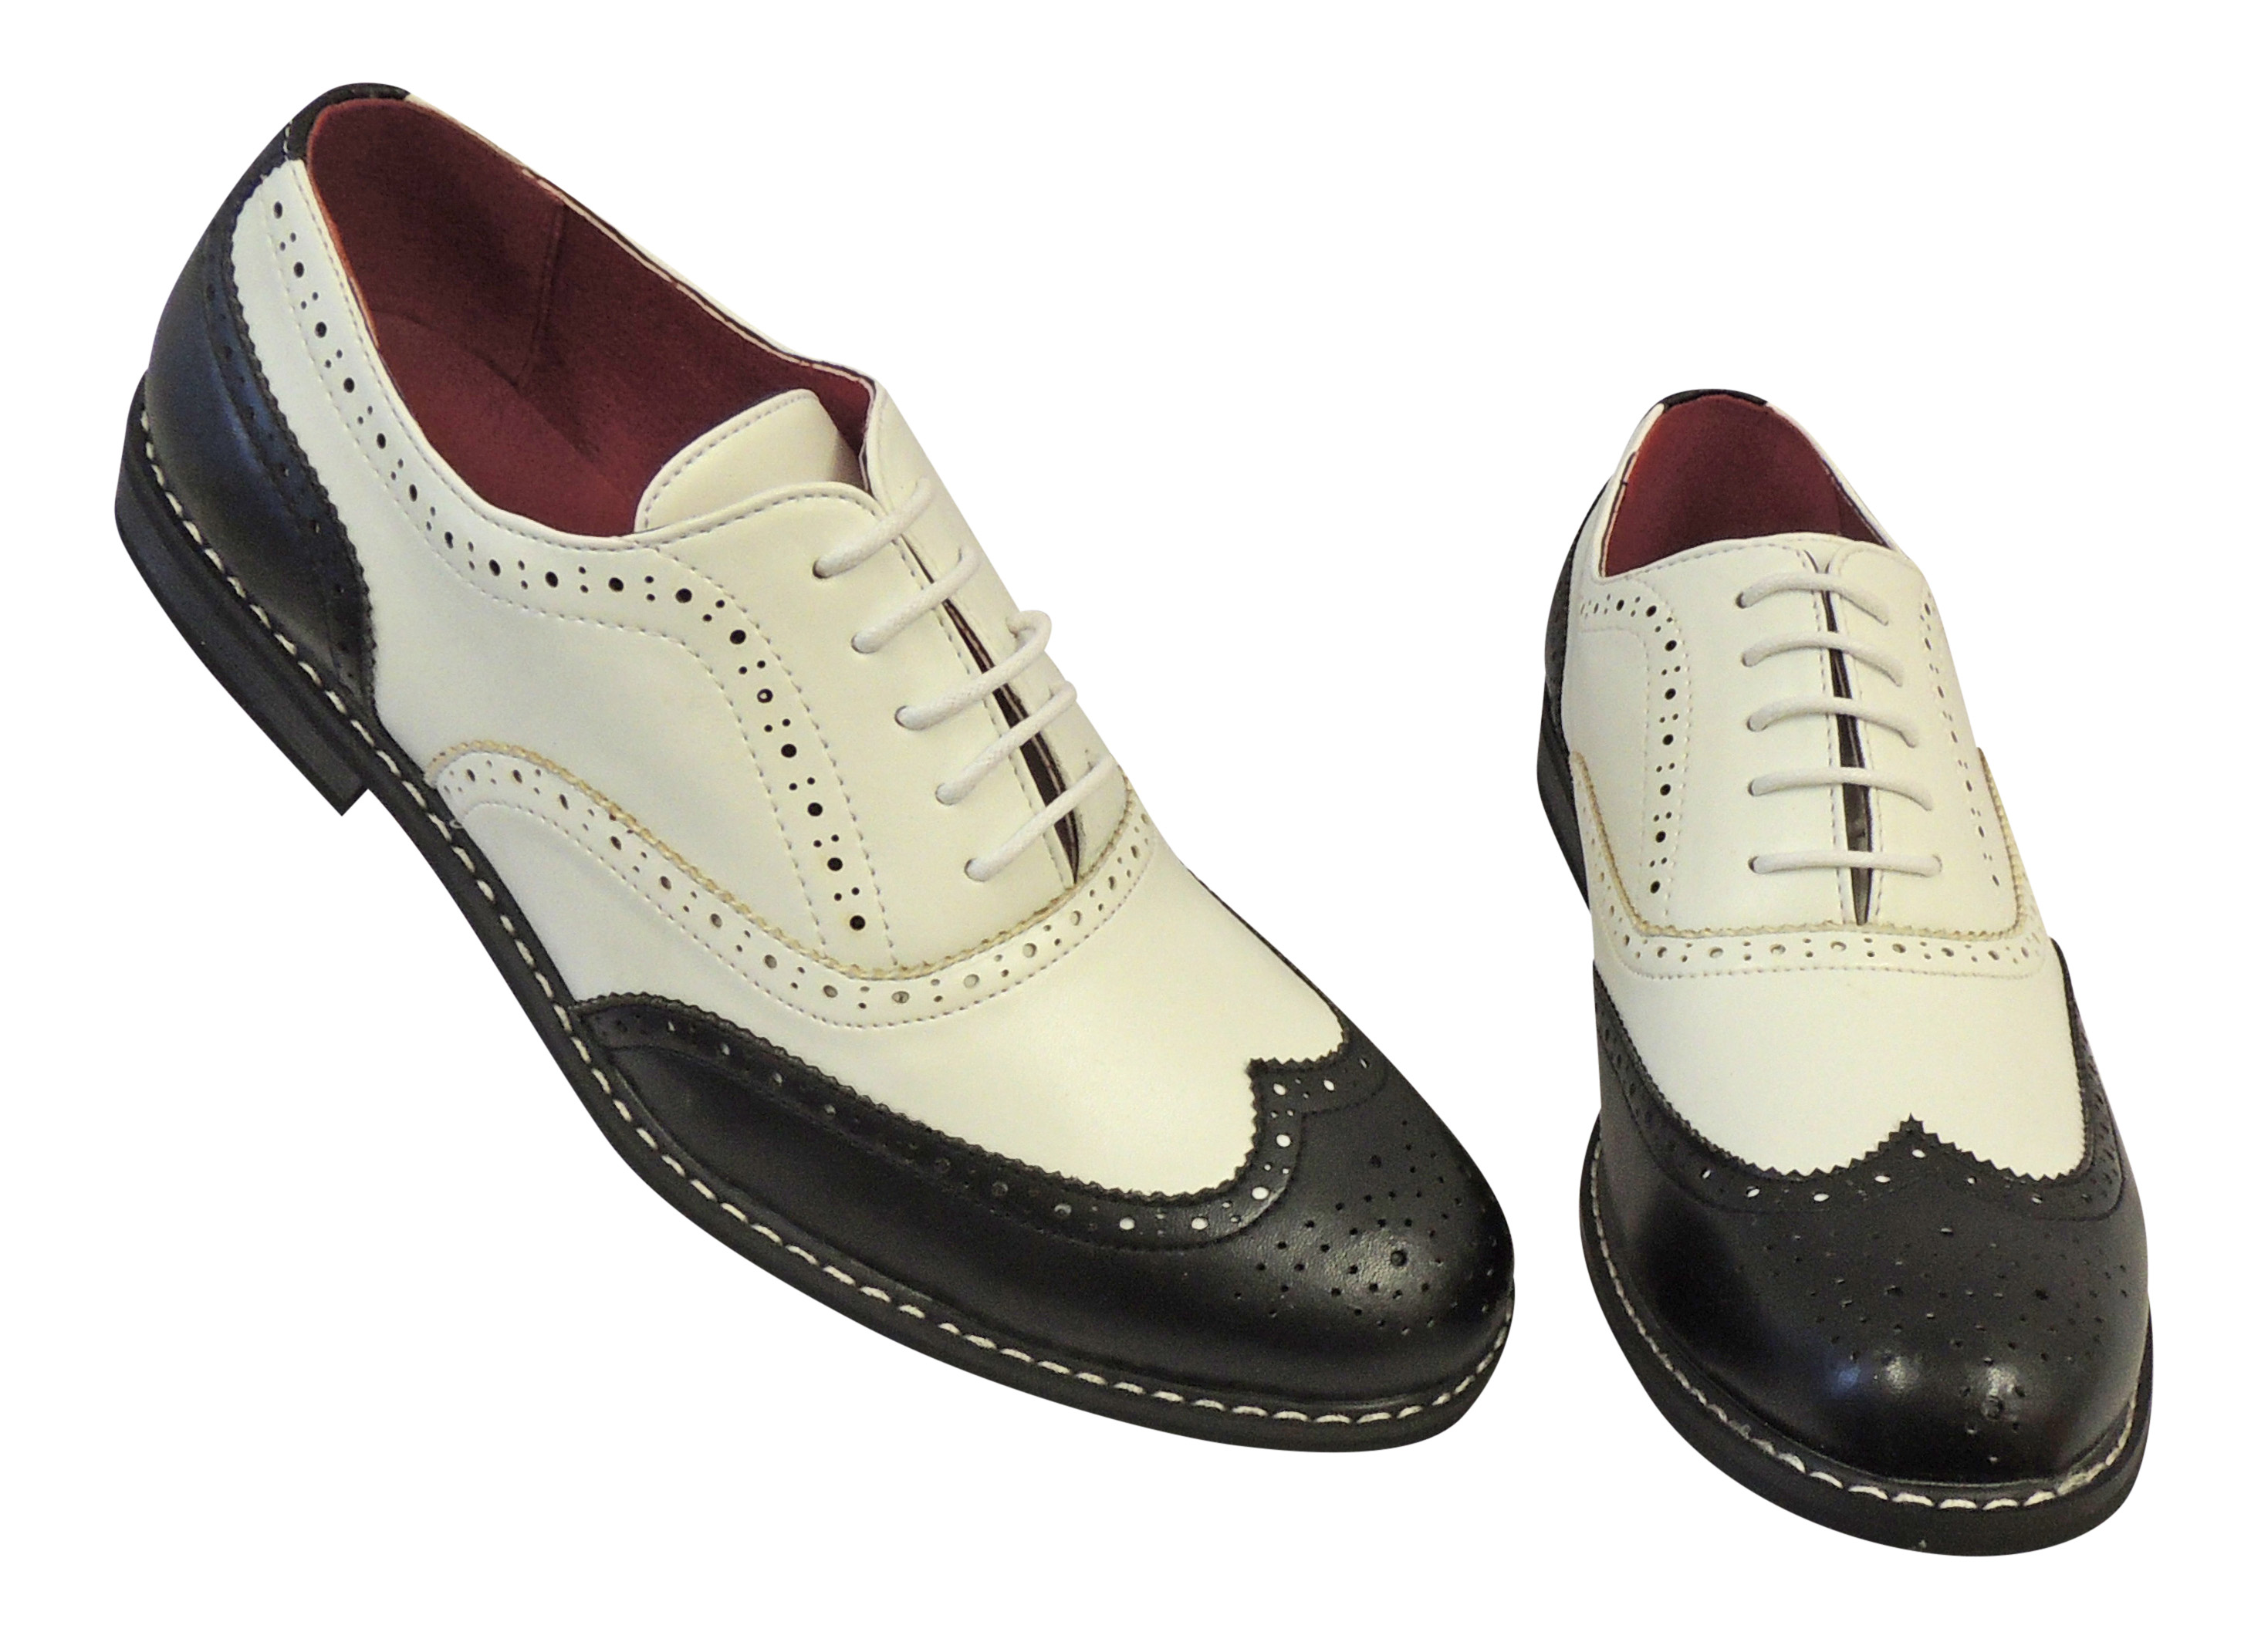 Jive Shoes Mens S Style